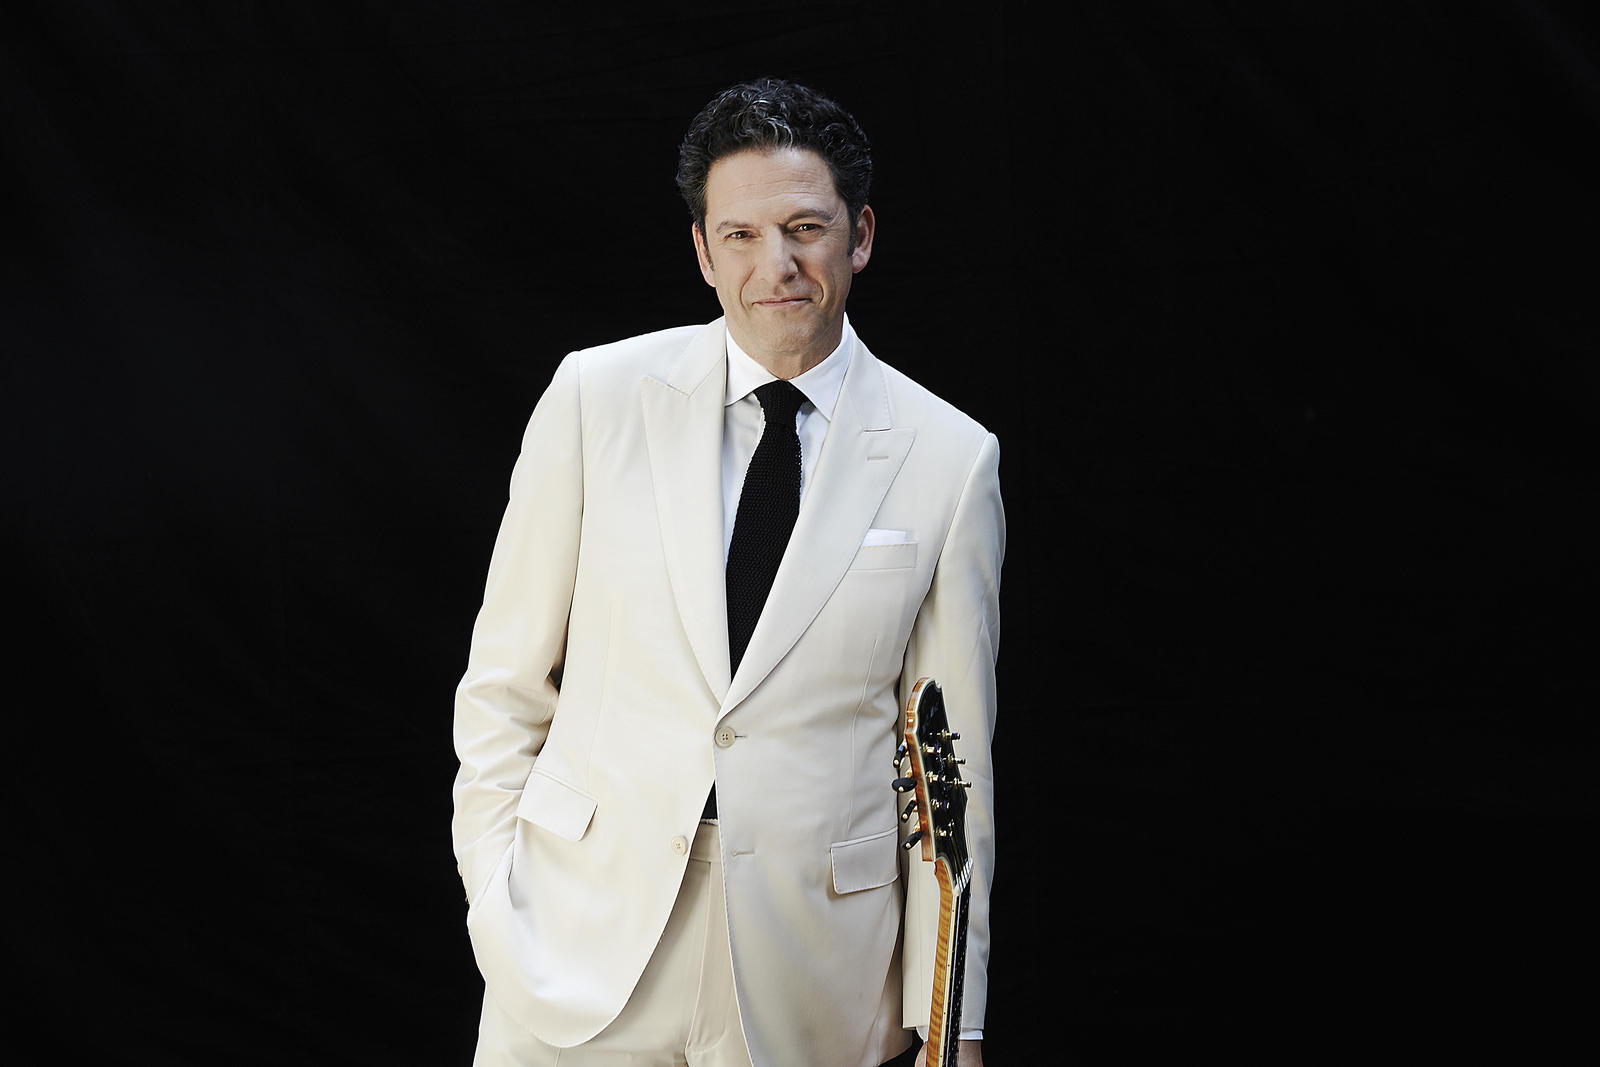 John Pizzarelli Sings Johnny Mercer at Cafe Carlyle